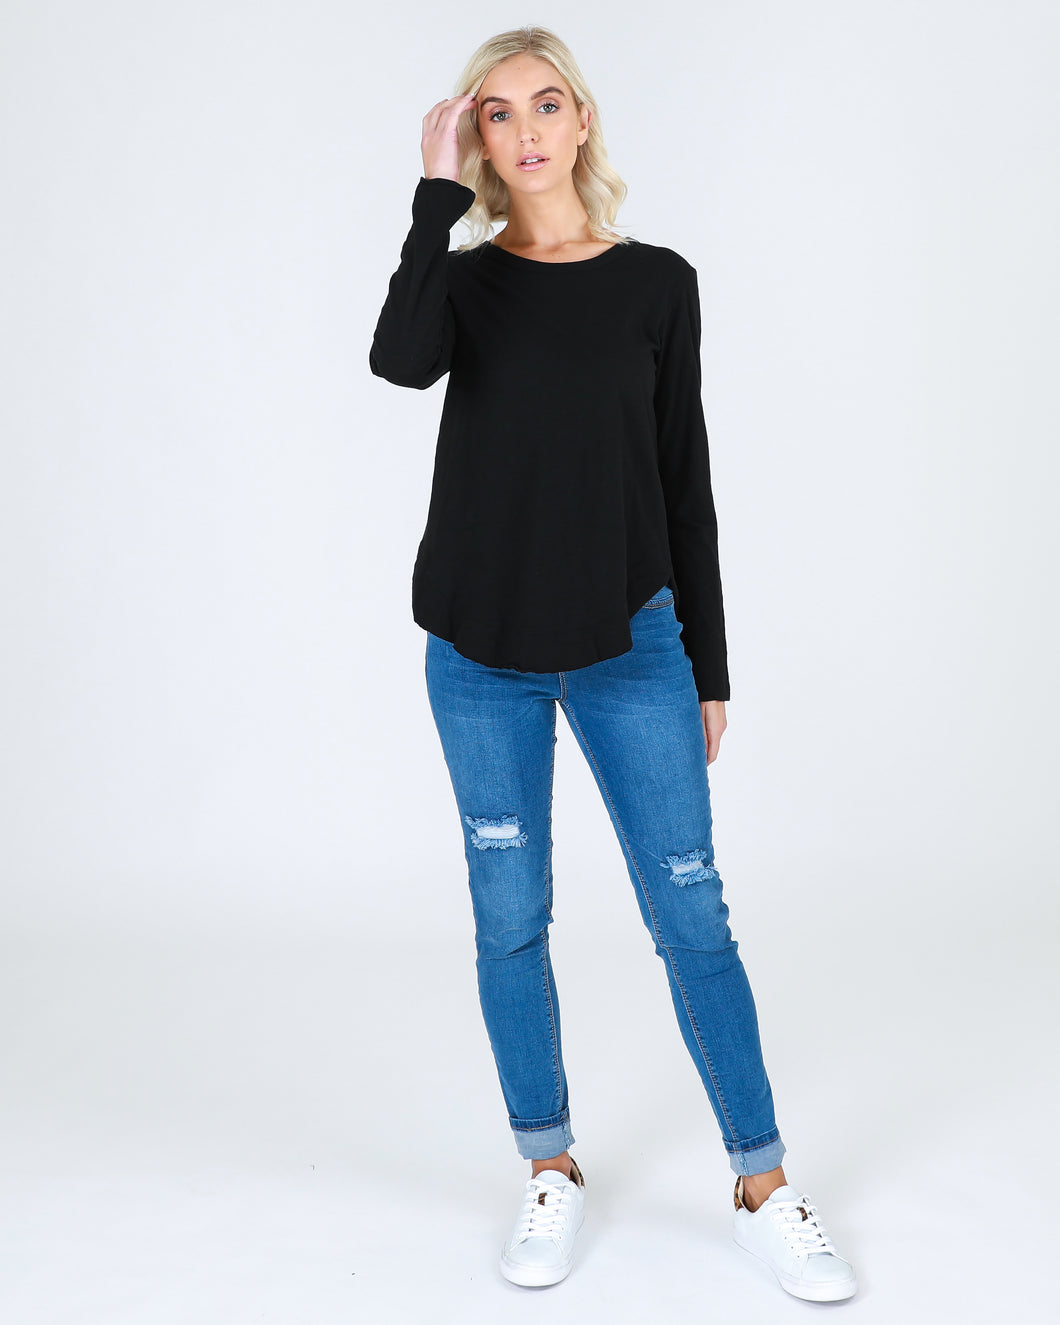 THIRD STORY LONG SLEEVE MOSMAN TOP, TSHIRT BLACK, BASIC STATE LONGER LENGTH. LAYERING TOP